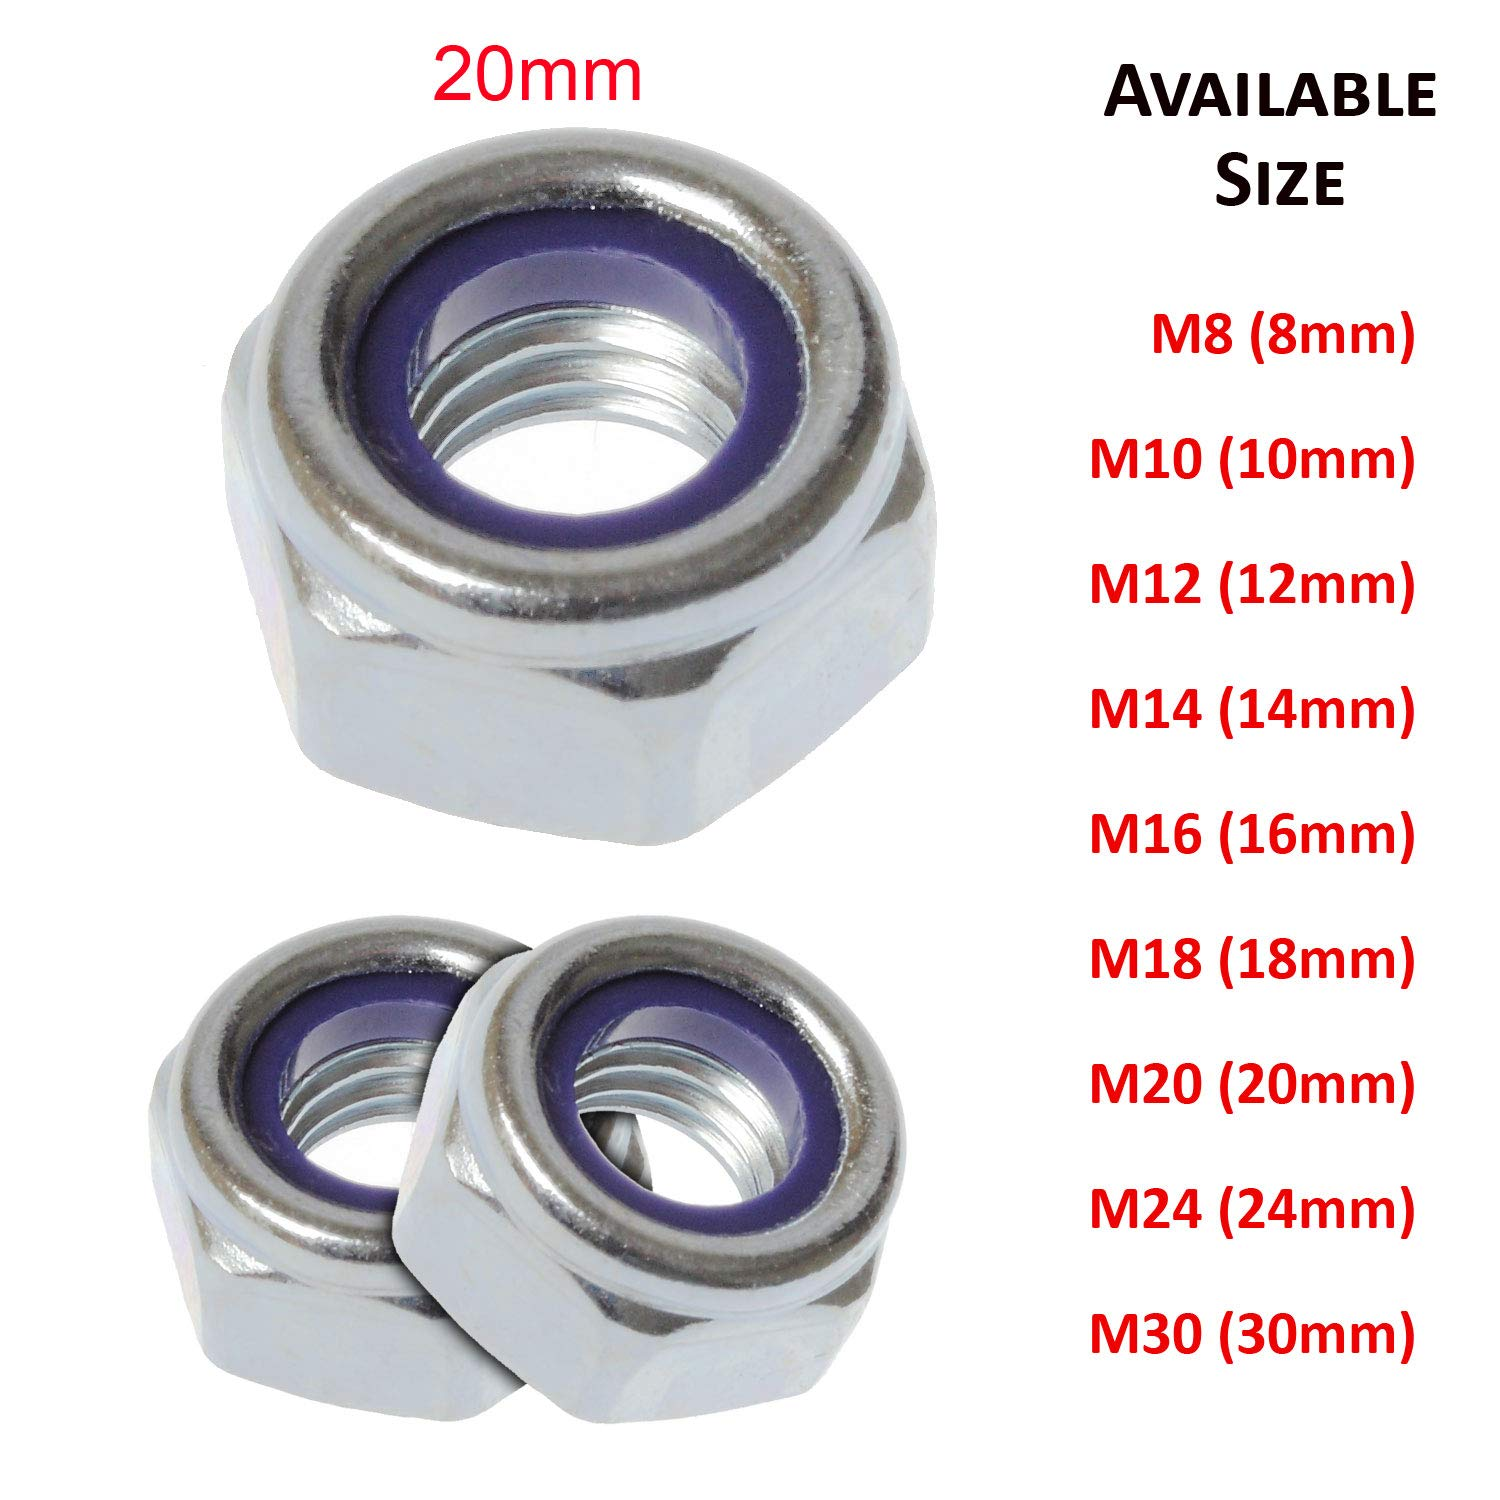 (18mm) M18 Nyloc Lock Nuts Nylon Insert Nuts Type T Bright Zinc Plated CR3 Grade 10 DIN 985 - Pack 5 SHUKAN